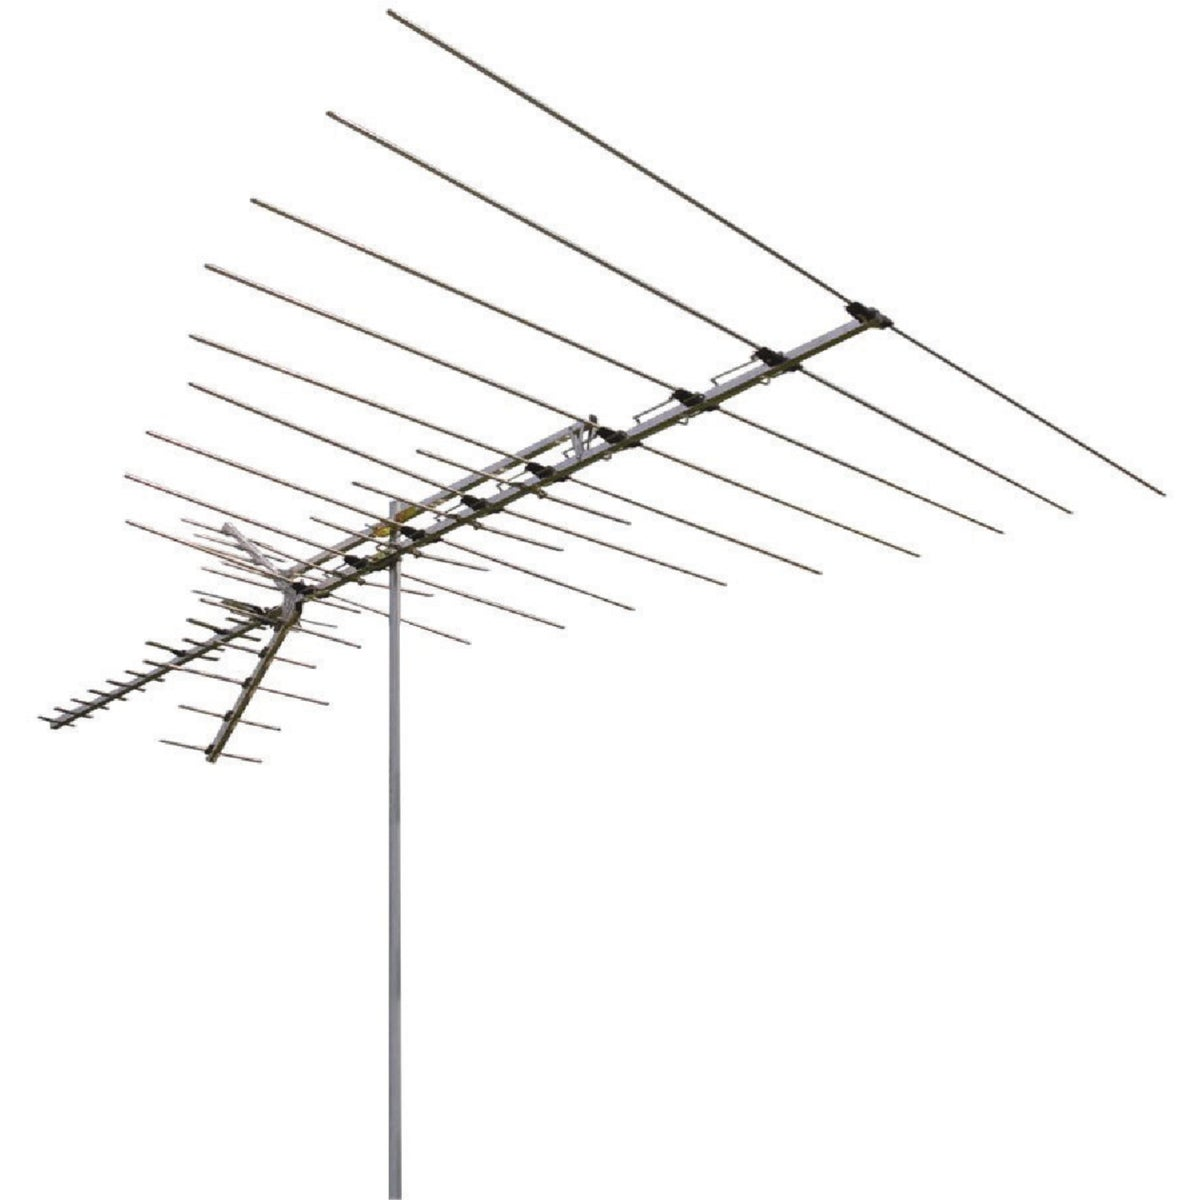 100 MILE OUTDOOR ANTENNA - ANT3038XR by Audiovox Accessories